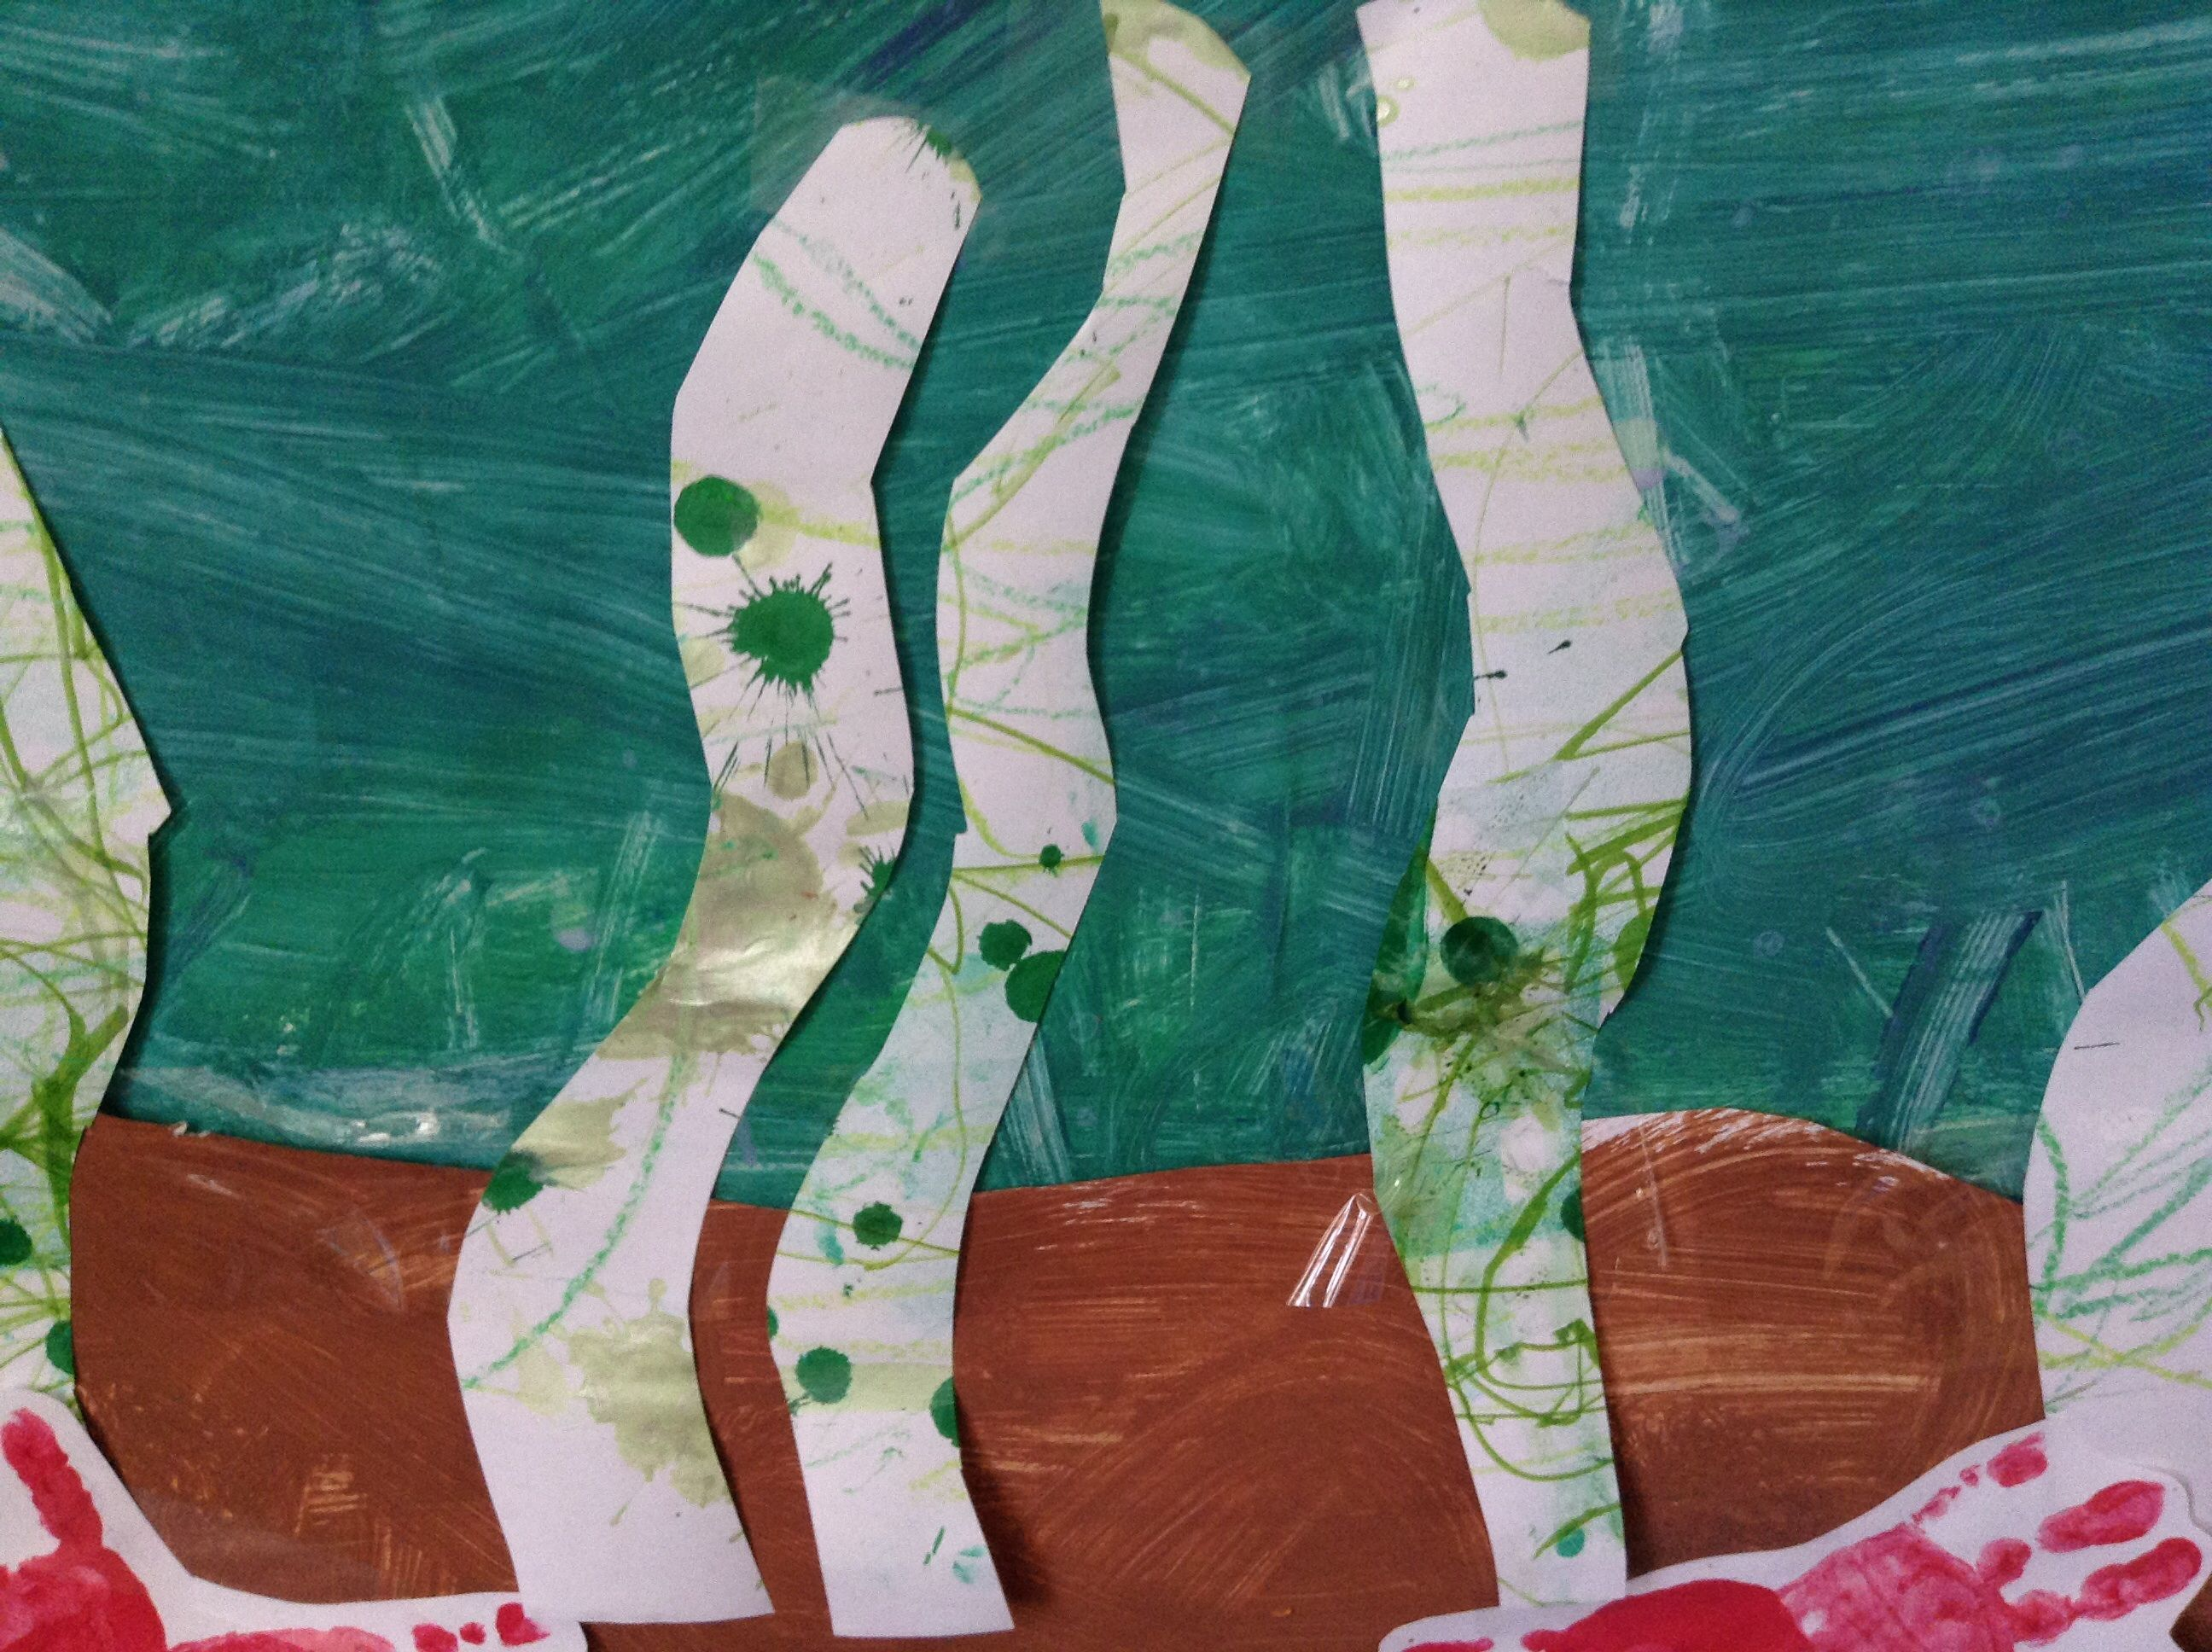 Sea weed: cover table with paper, give kids different green art implements (dot paints, crayons, markers, stamps). Cut out the spots you want into sea weed shapes.